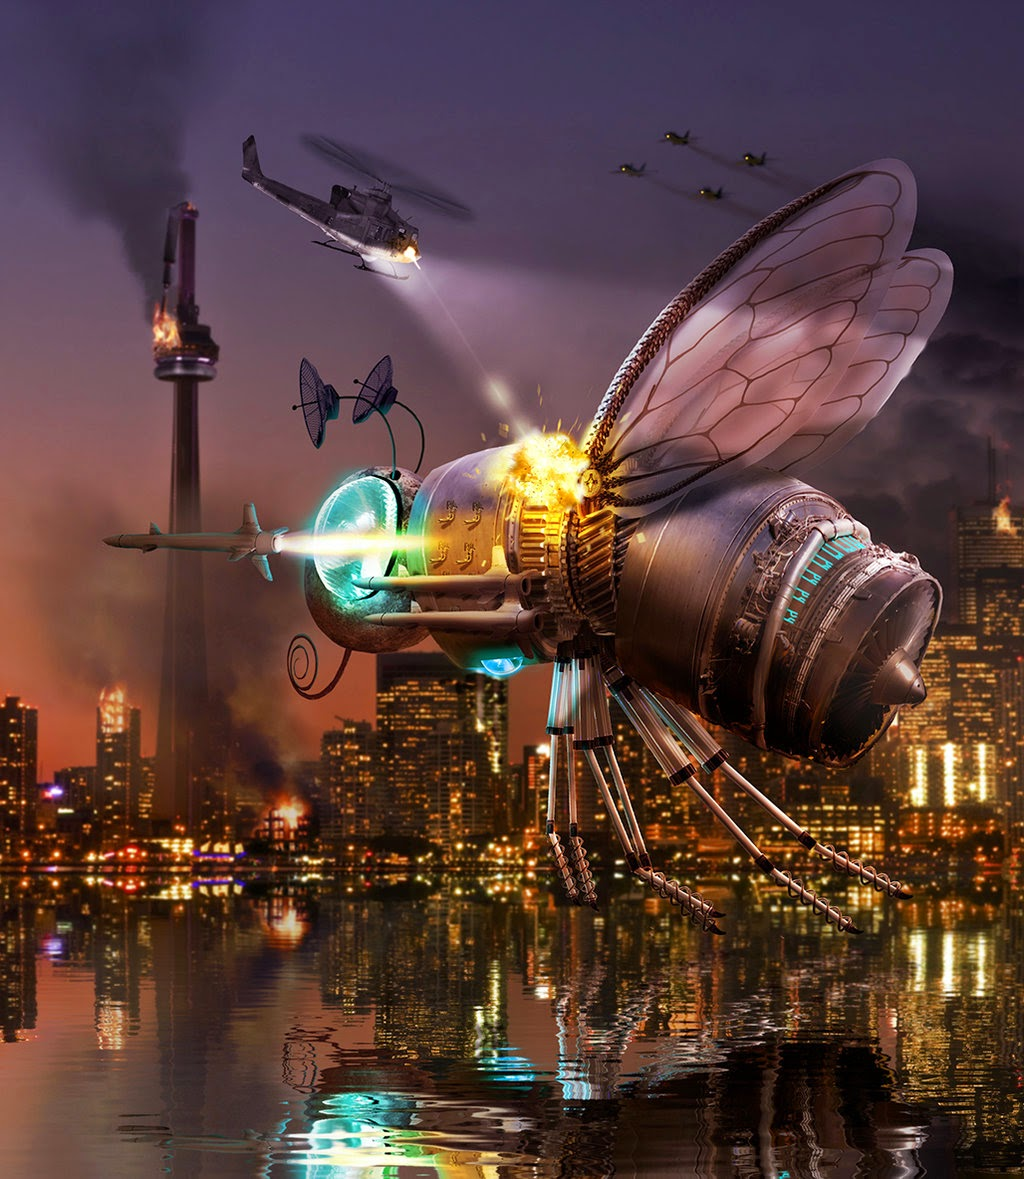 13-BugBot-Attack-Debra-Mason-Shorra-Surreal-Digital-Micro-Universes-www-designstack-co